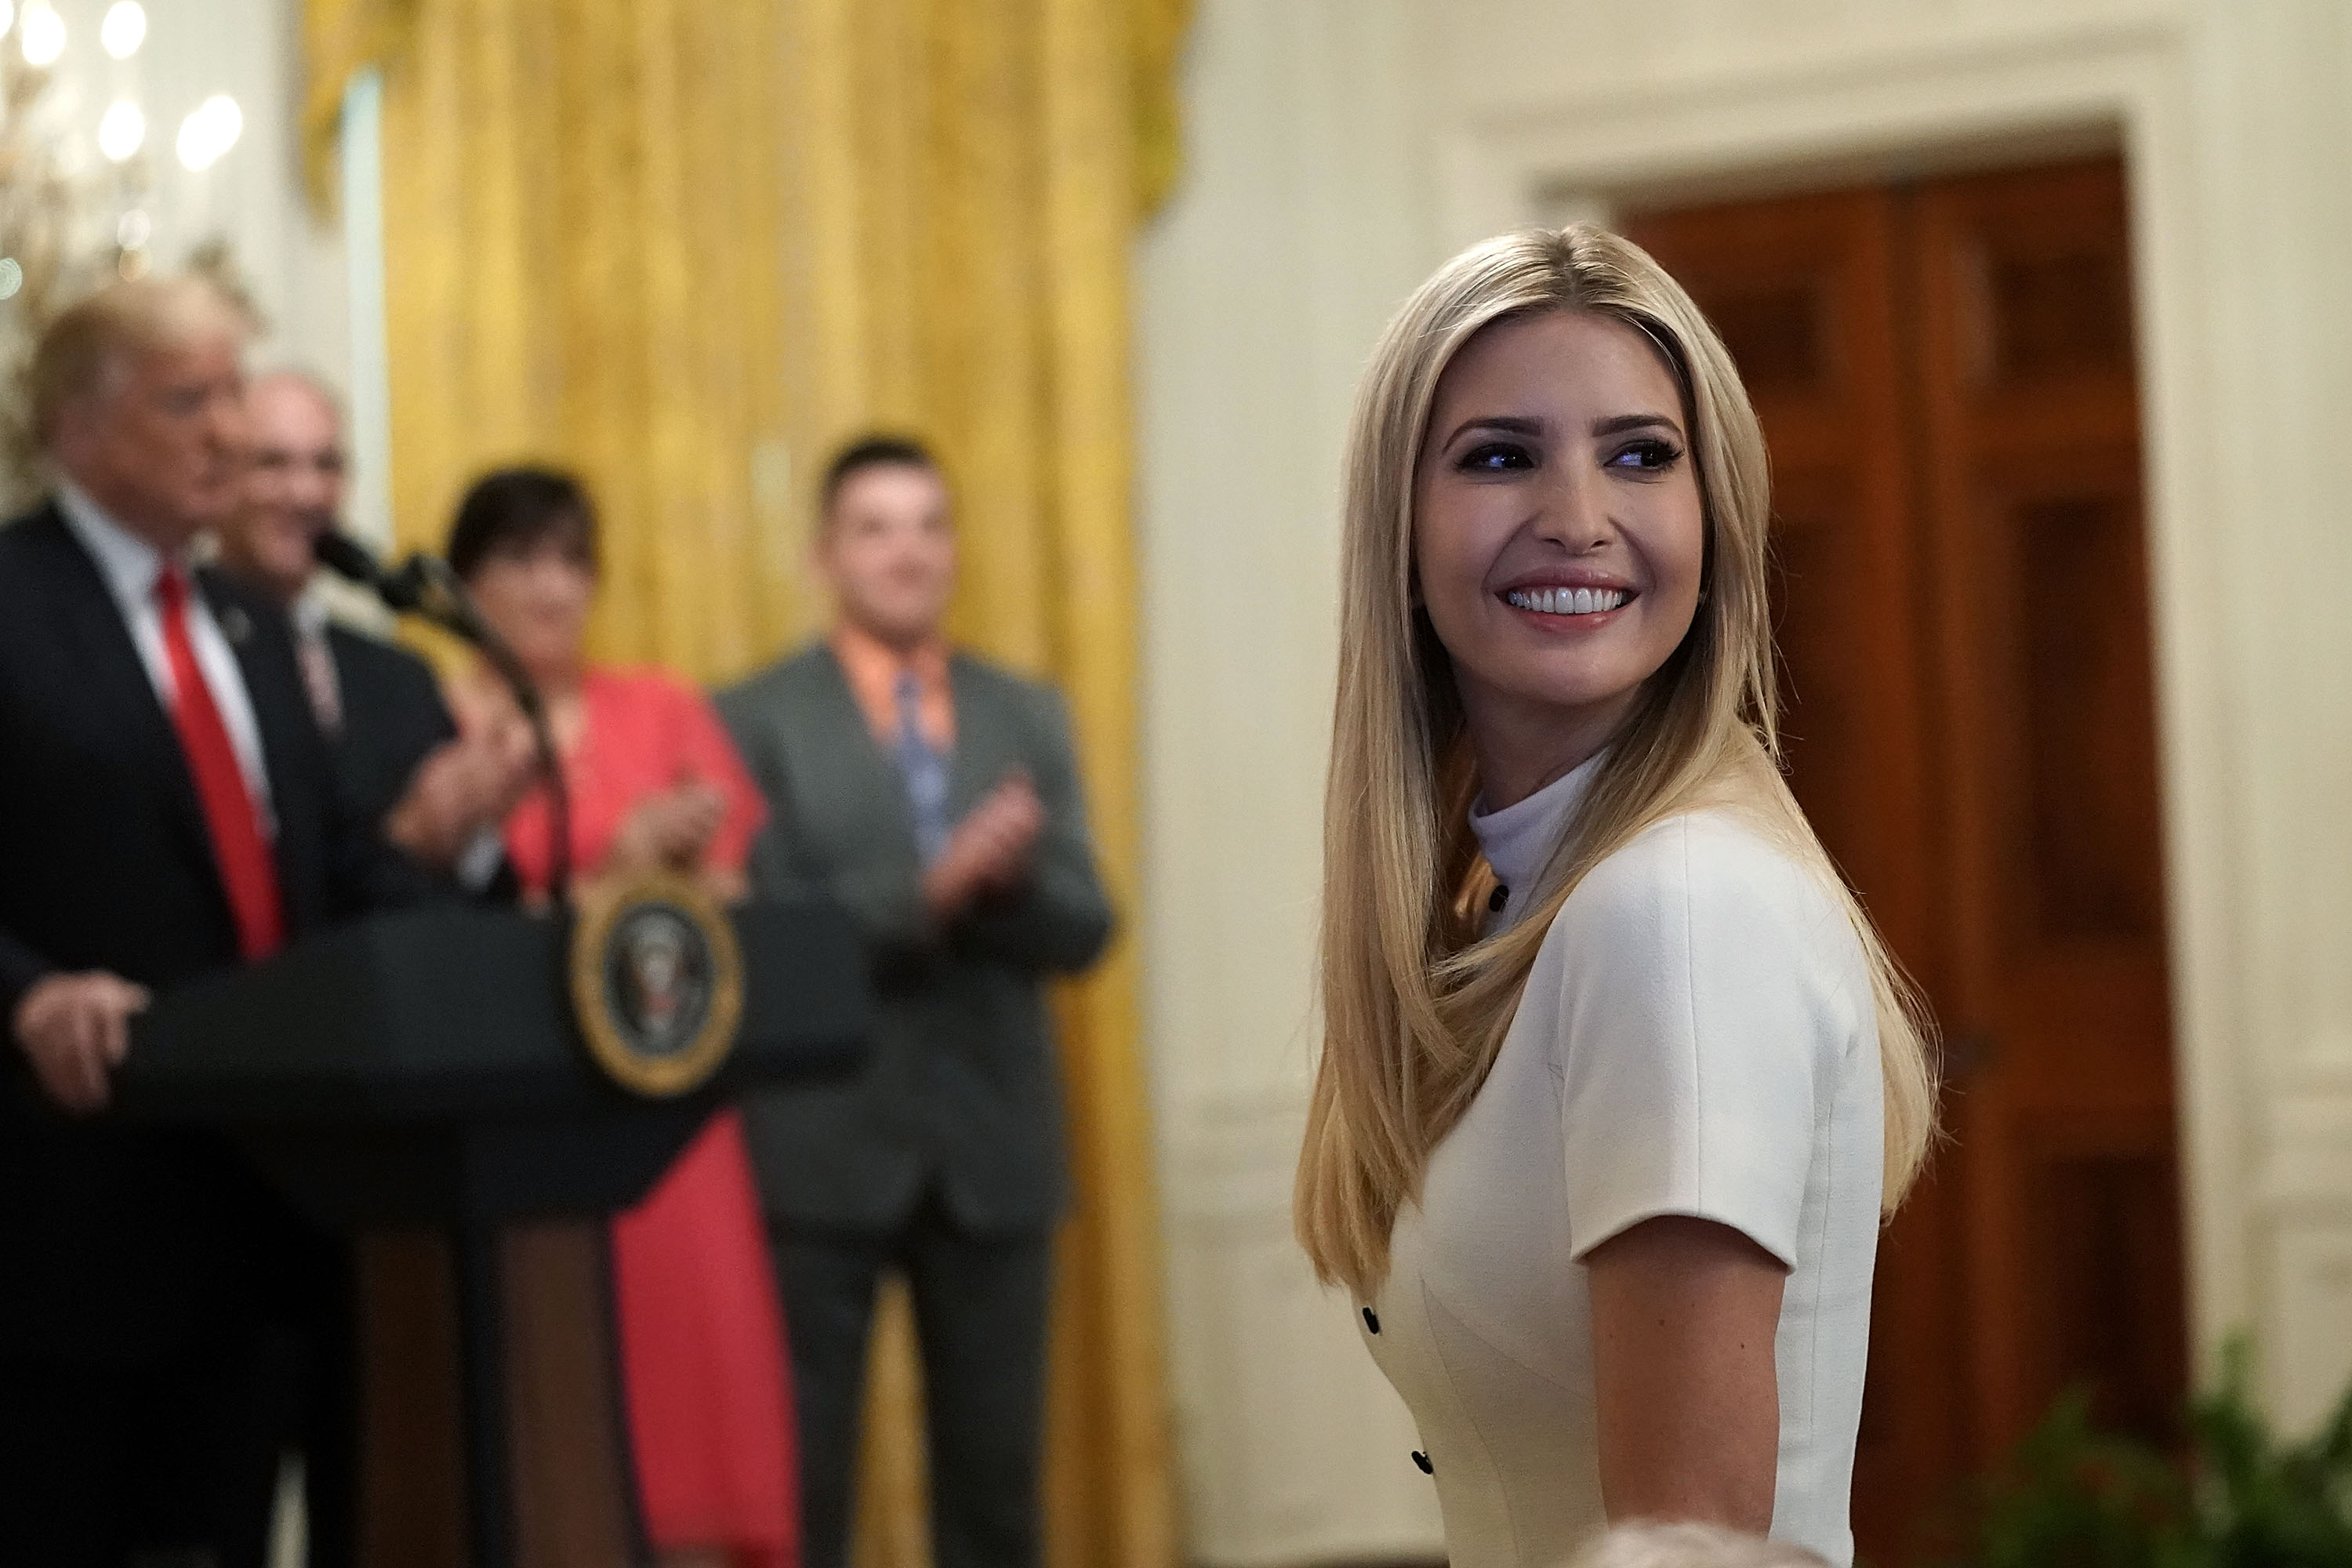 Ivanka Trump, senior adviser and daughter of U.S. President Donald Trump, attends an event at the East Room of the White House June 29, 2018 in Washington, DC.